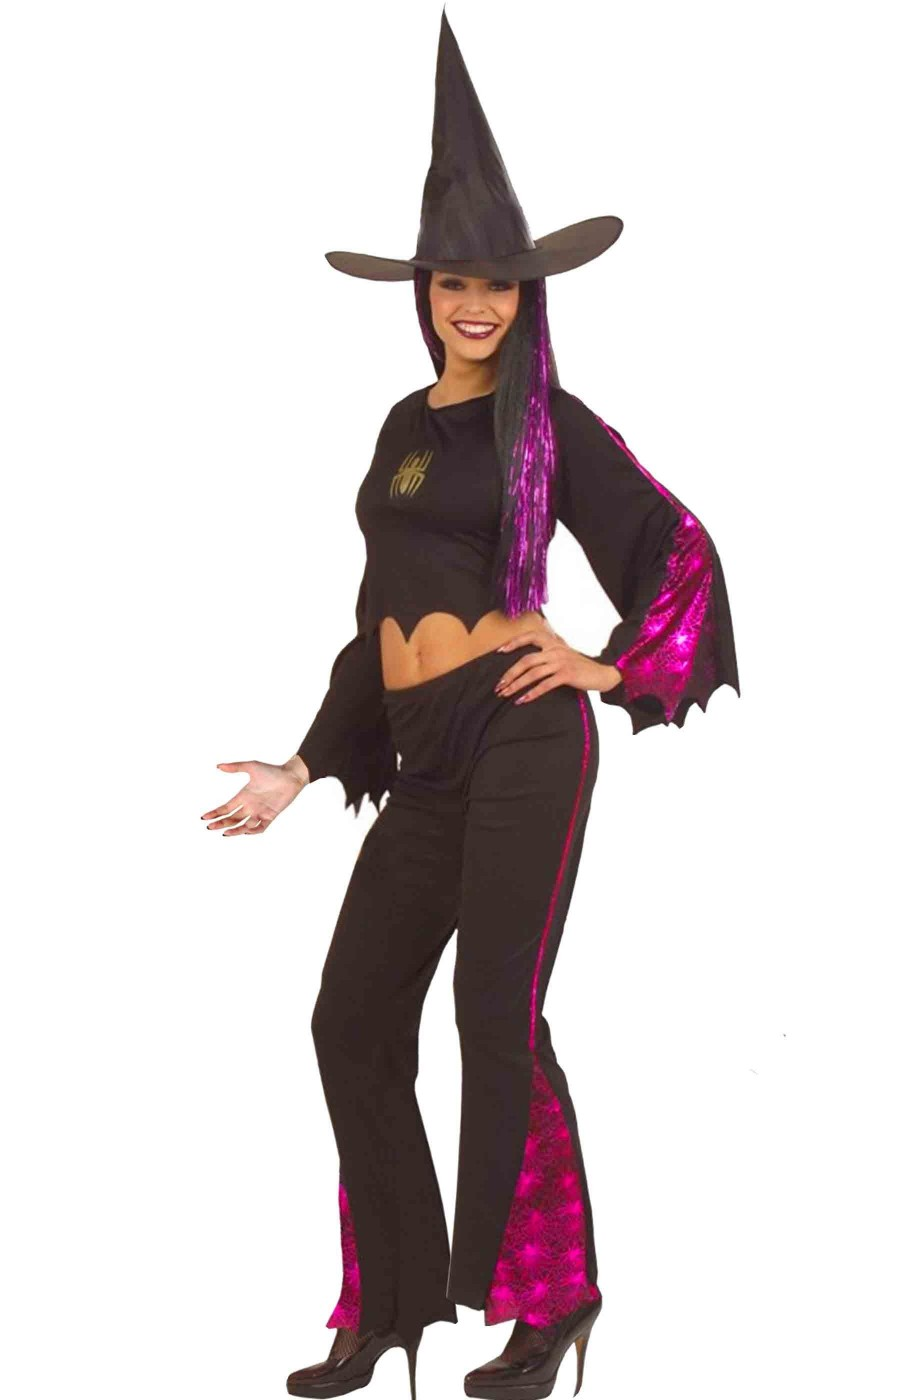 Costume Halloween da strega con top e pantalone donna adulta